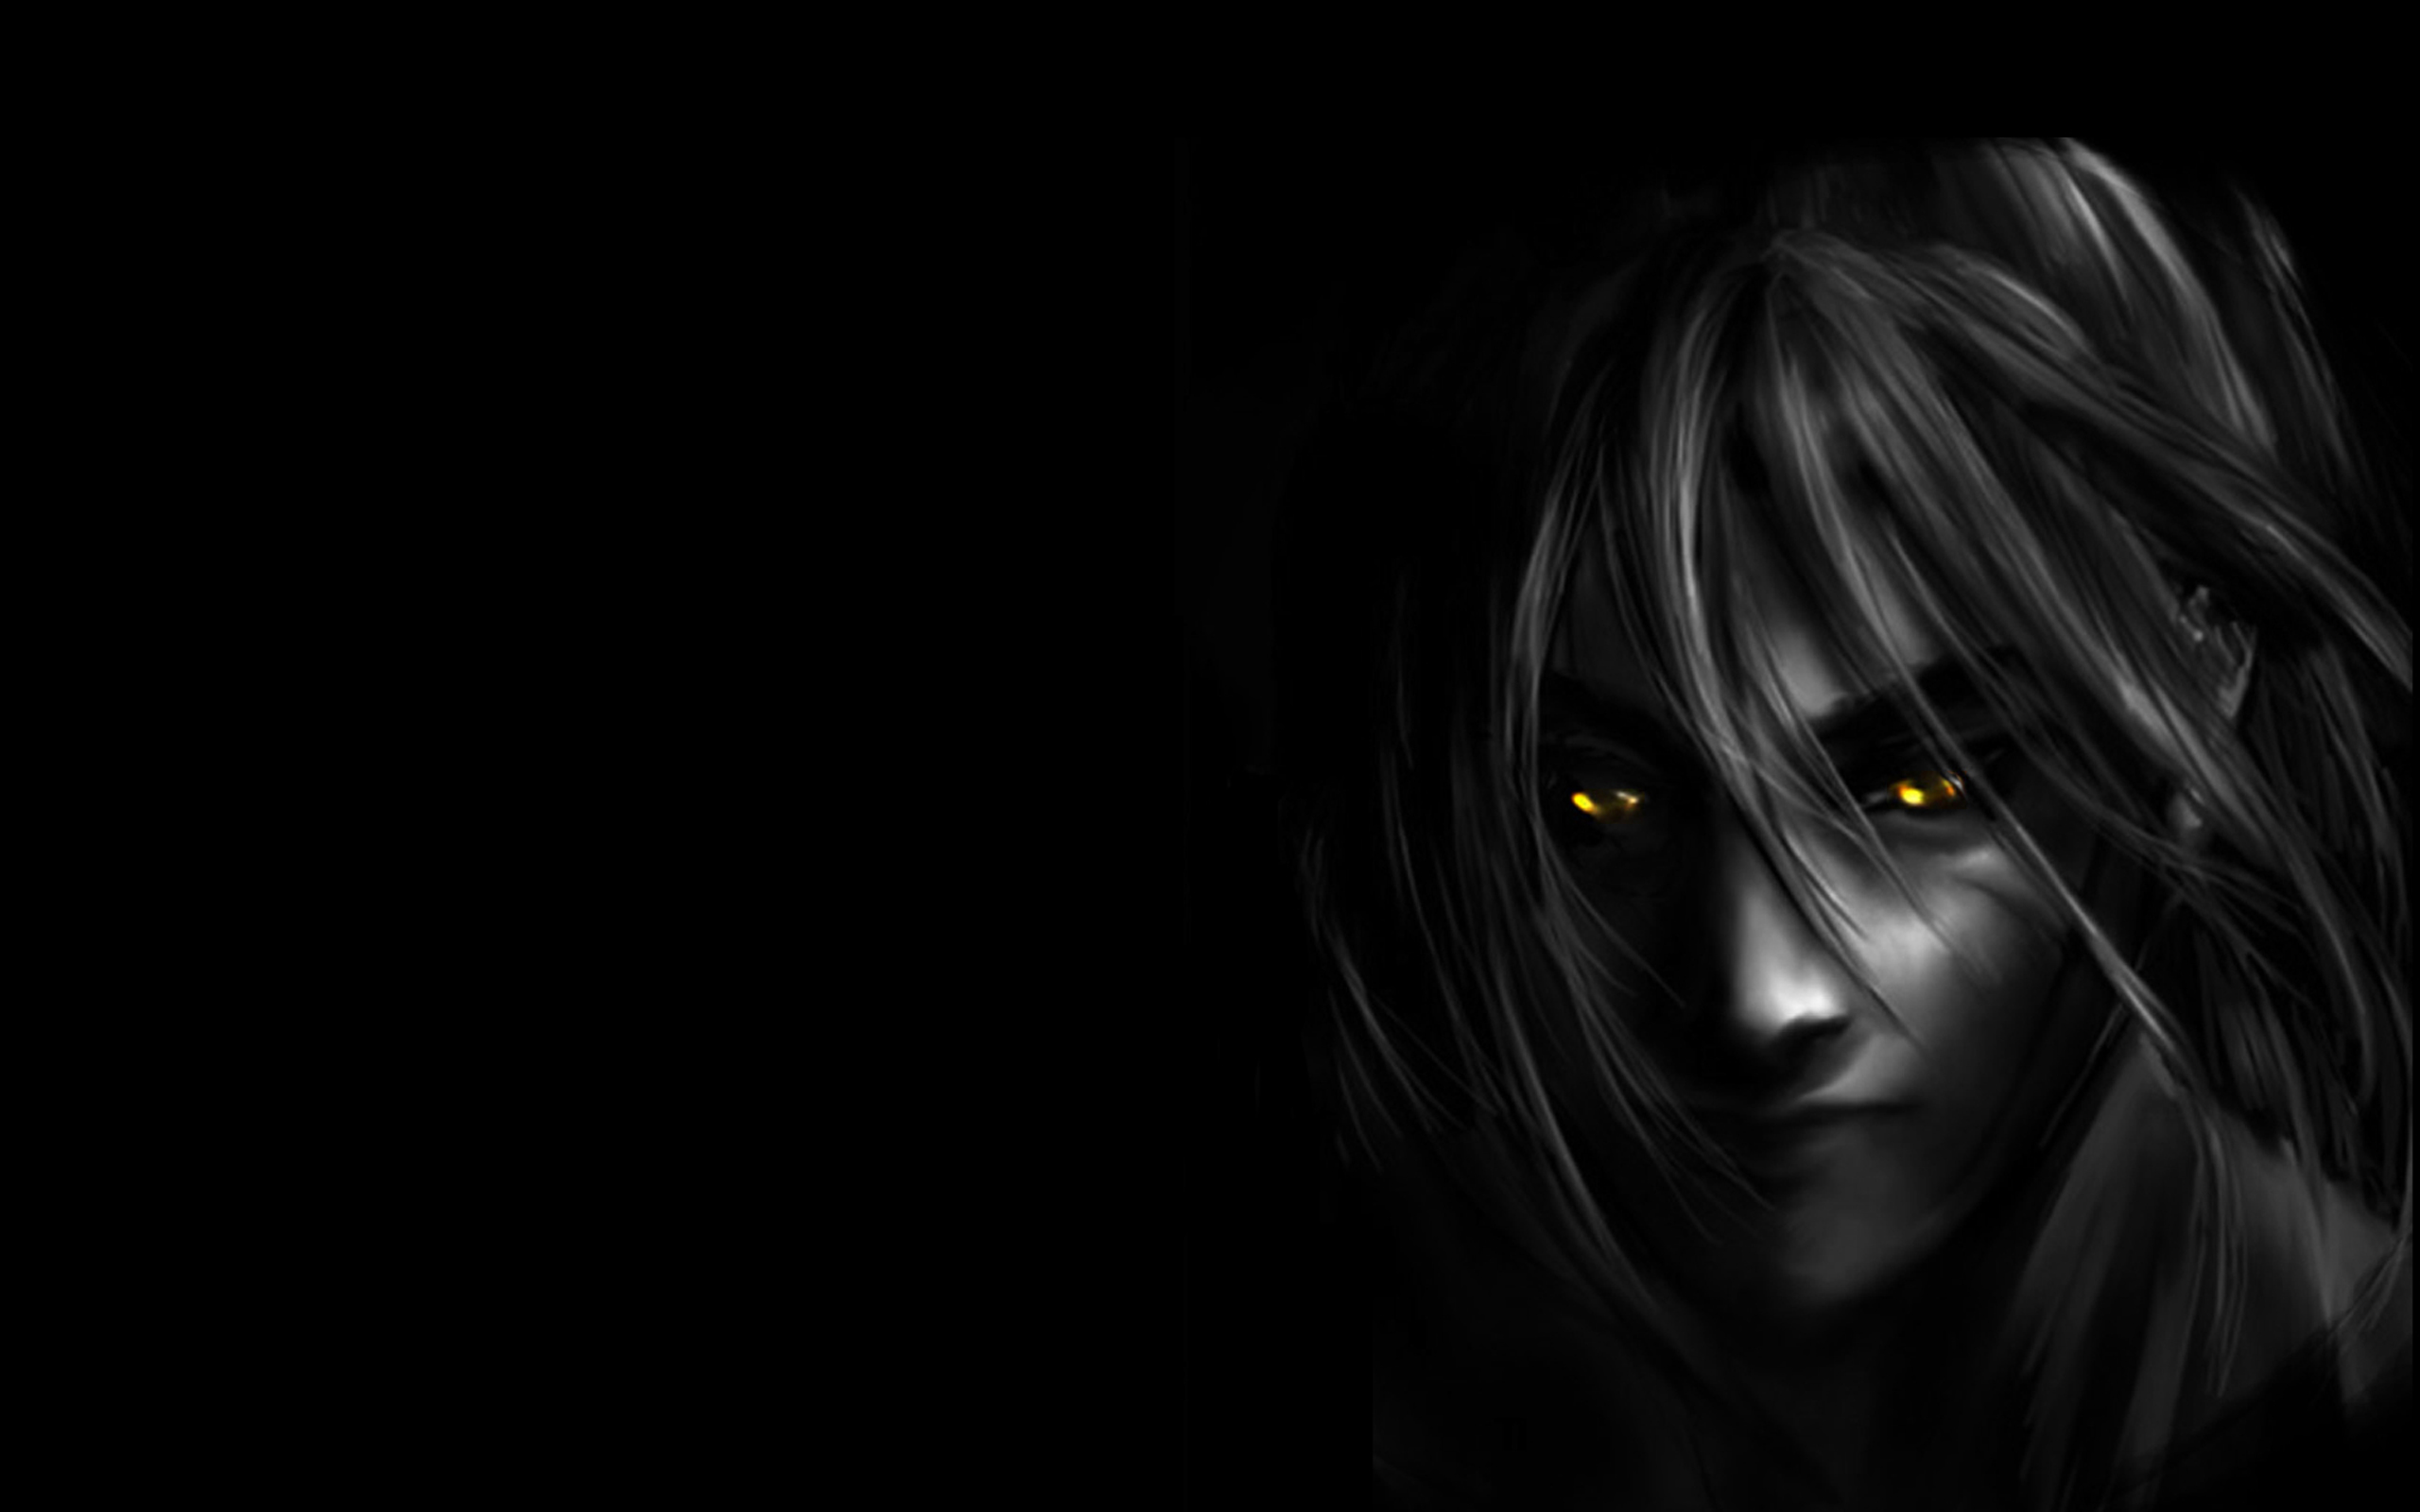 Dark Anime Wallpaper Widescreen Hd Widescreen 11 HD Wallpapers